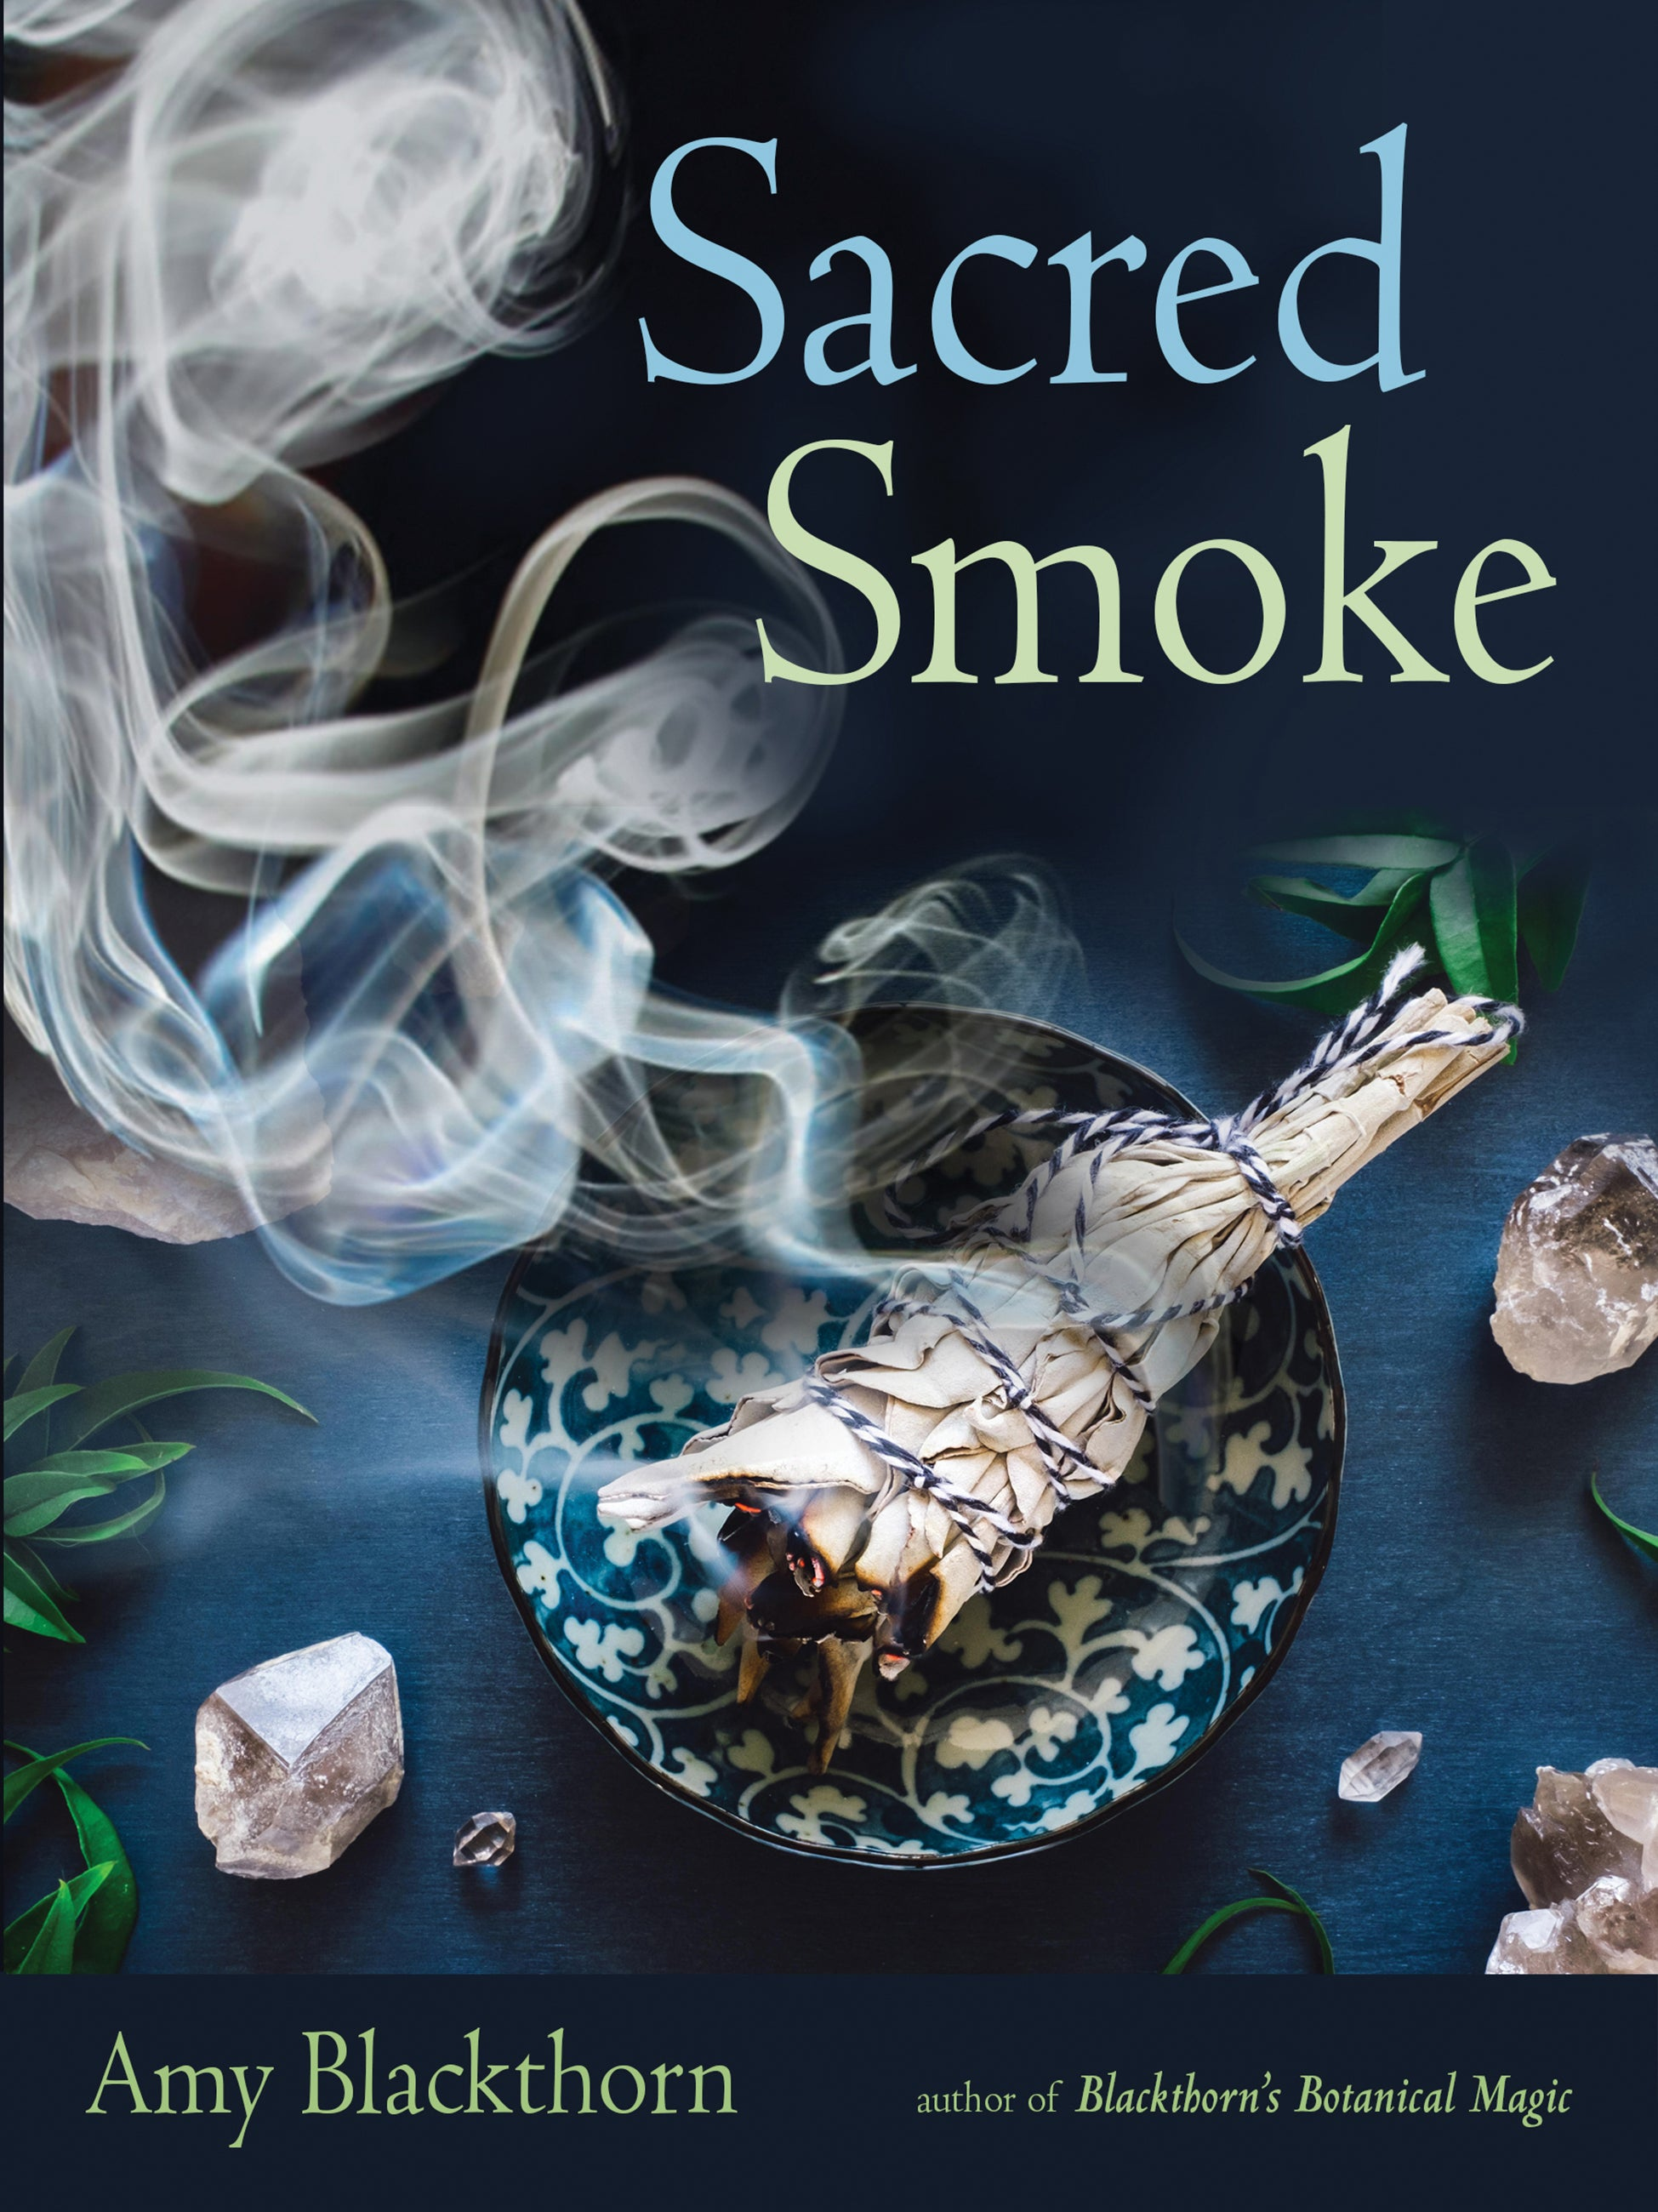 Sacred Smoke (Amy Blackthorn)